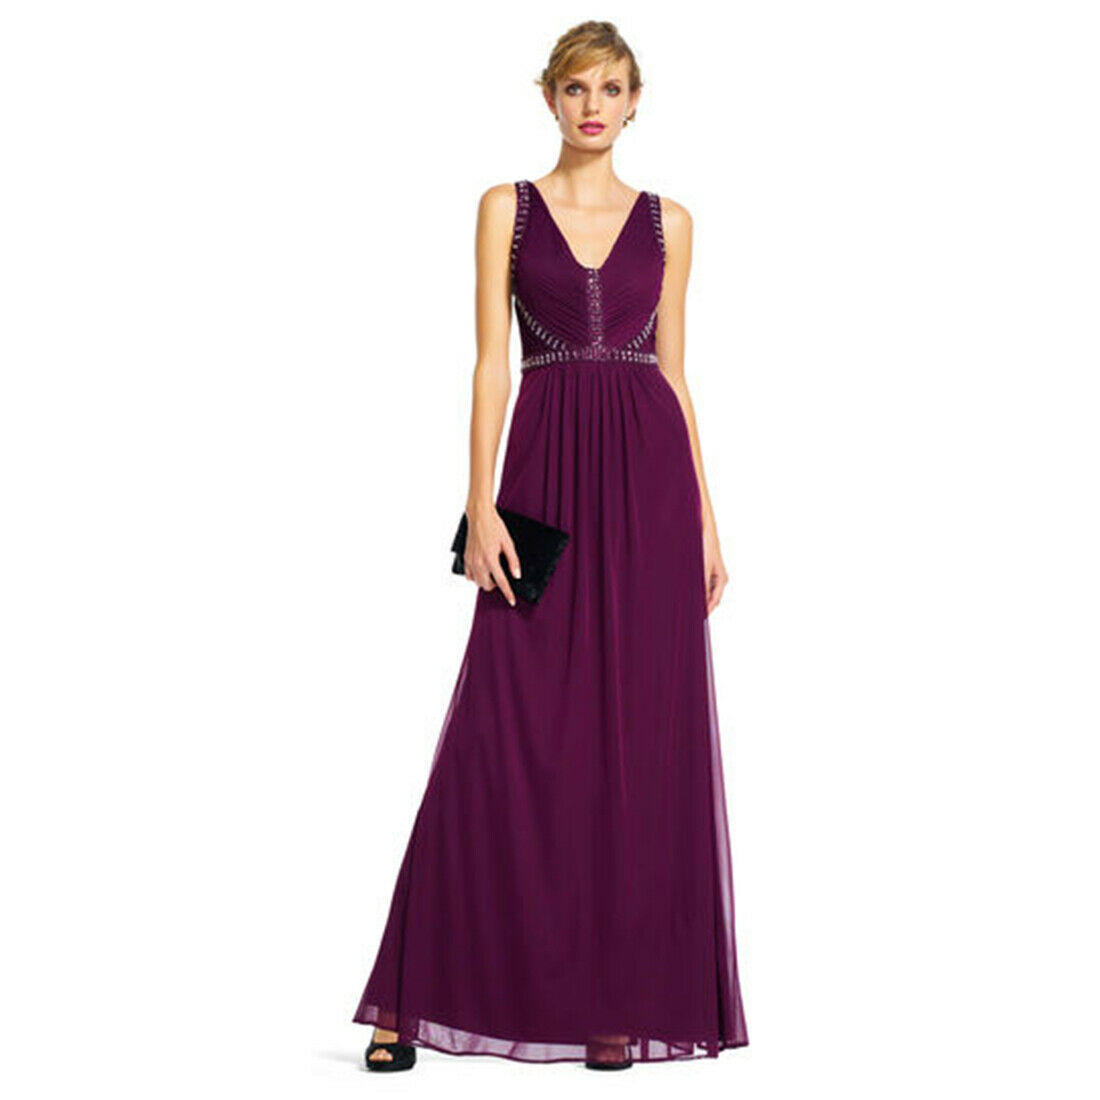 Adrianna Papell Draped Tulle Dress with Jeweled V-Neck Bodice, Cassis, 12